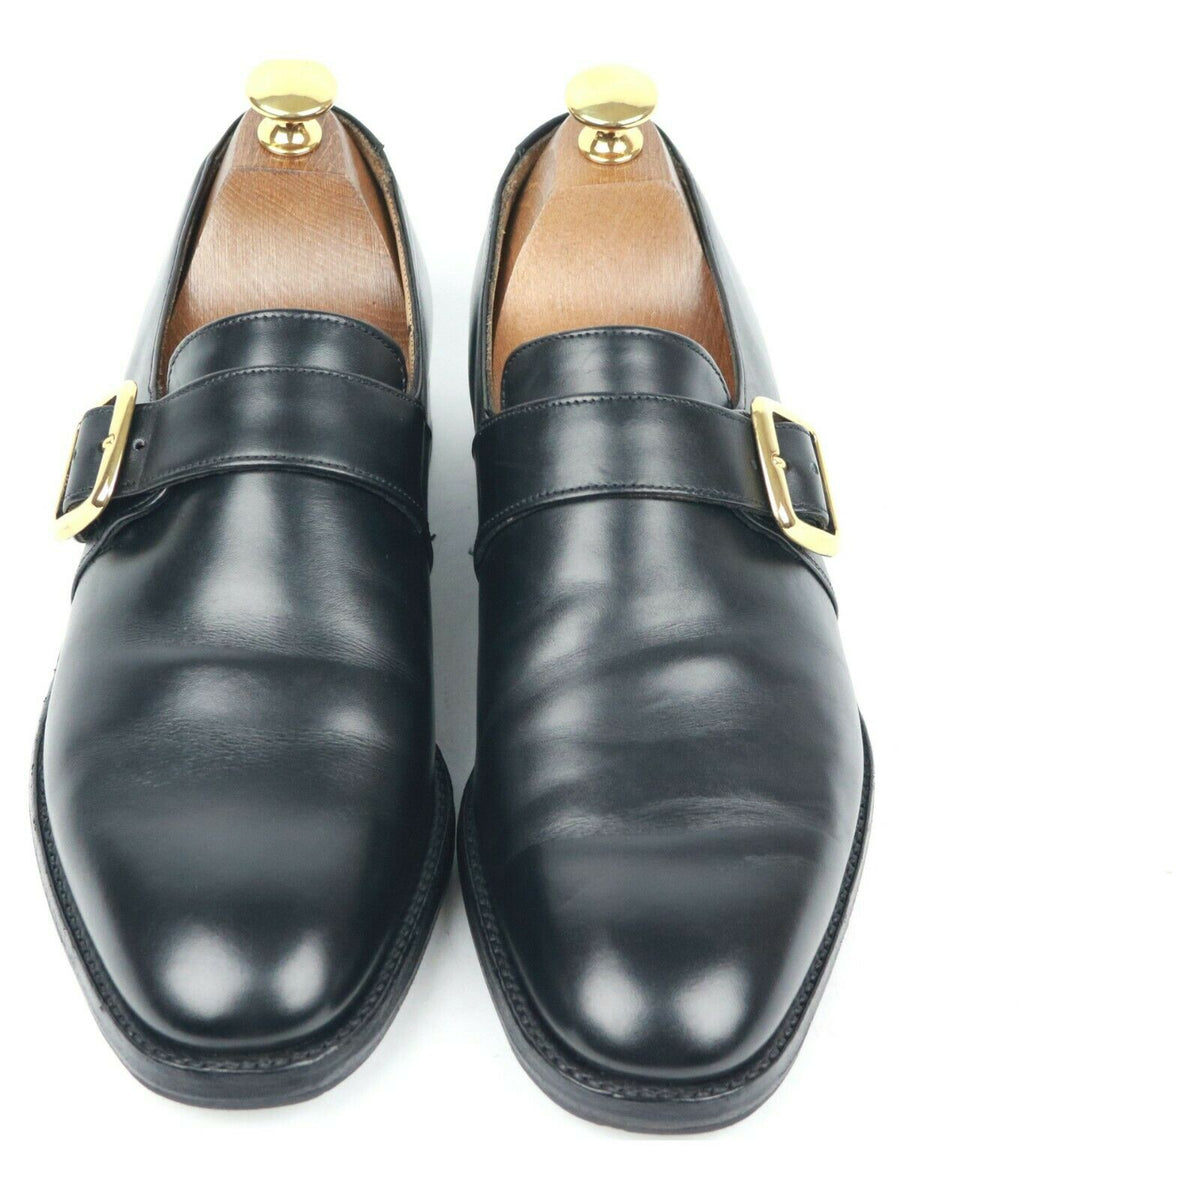 Cheaney 'William' Black Leather Monk Strap UK 6 F